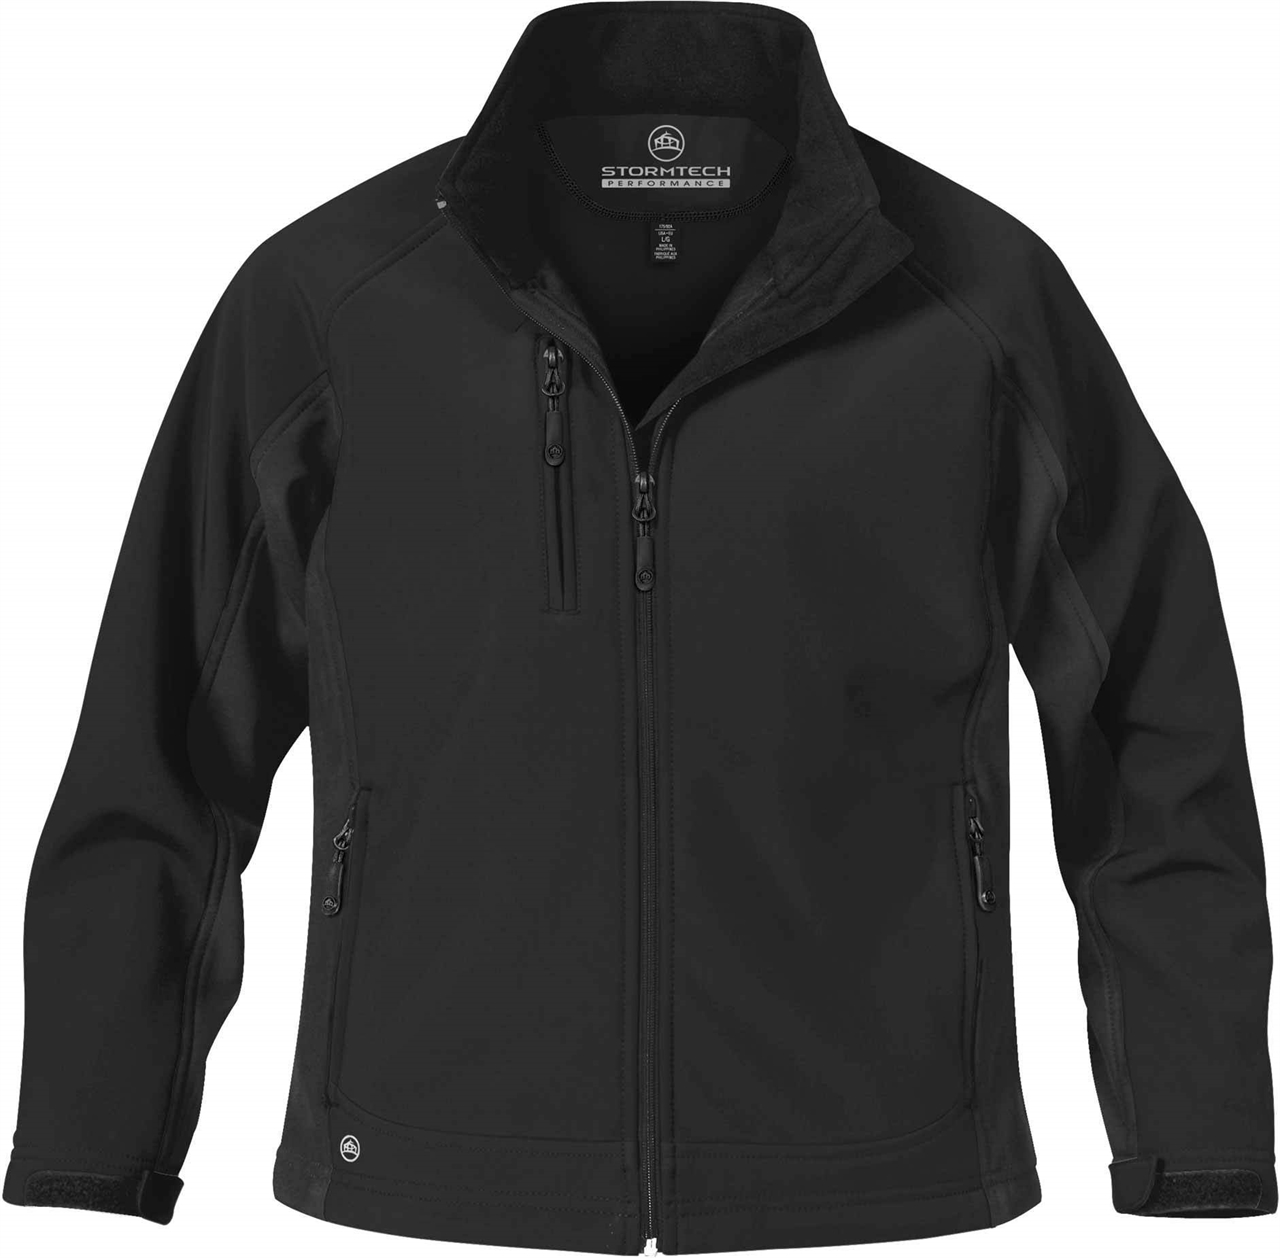 Picture of Stormtech Women's Crew Bonded Shell